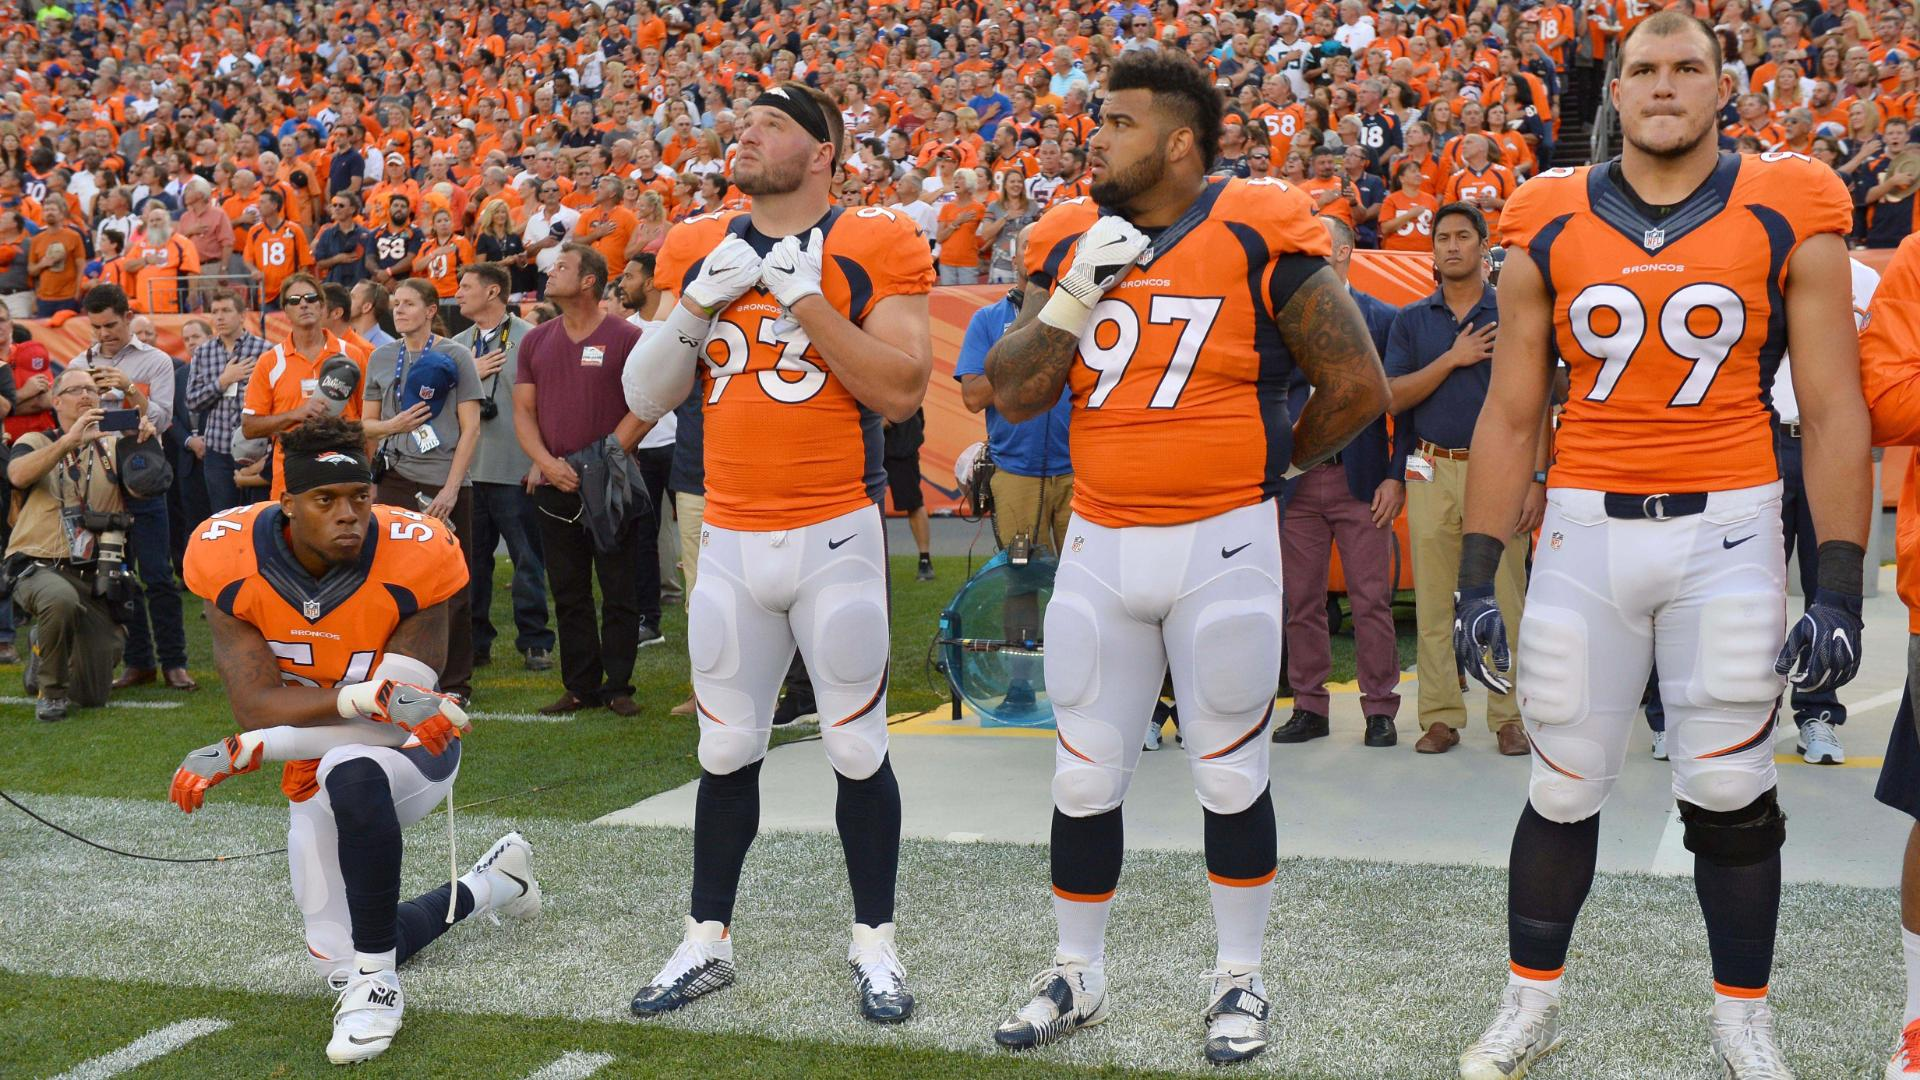 Brandon Marshall Kneeling during anthem will create dialogue